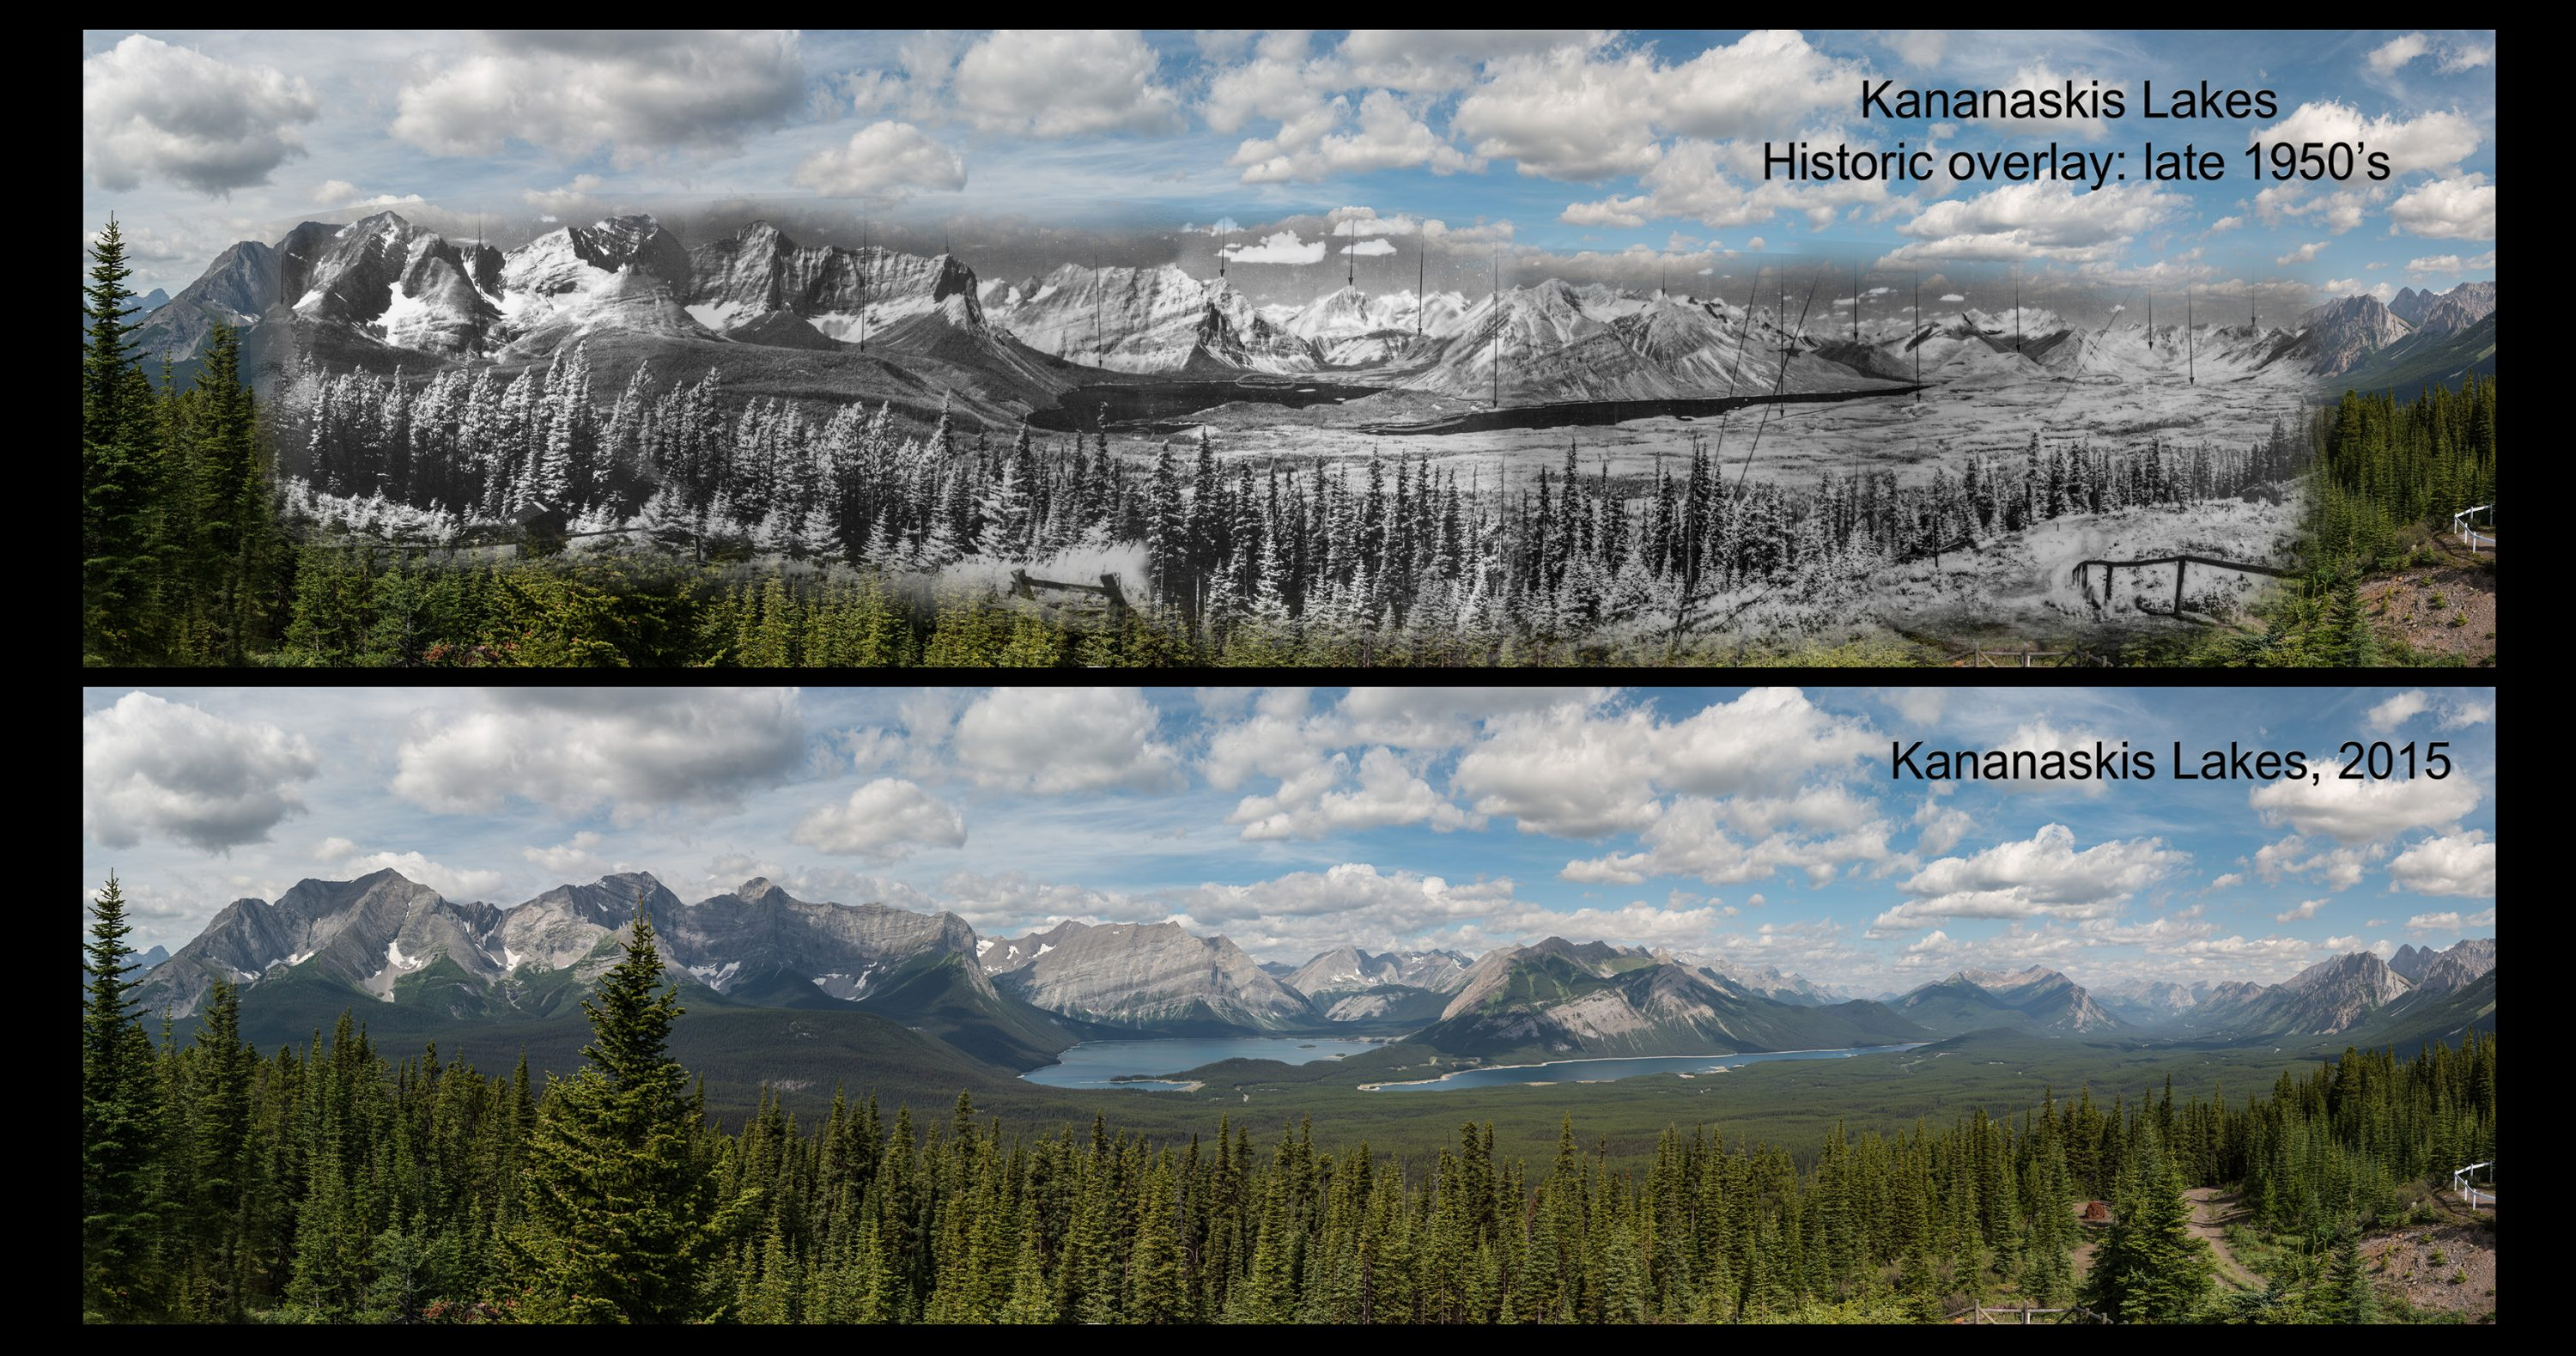 Kananaskis Lakes: 1950's and 2015